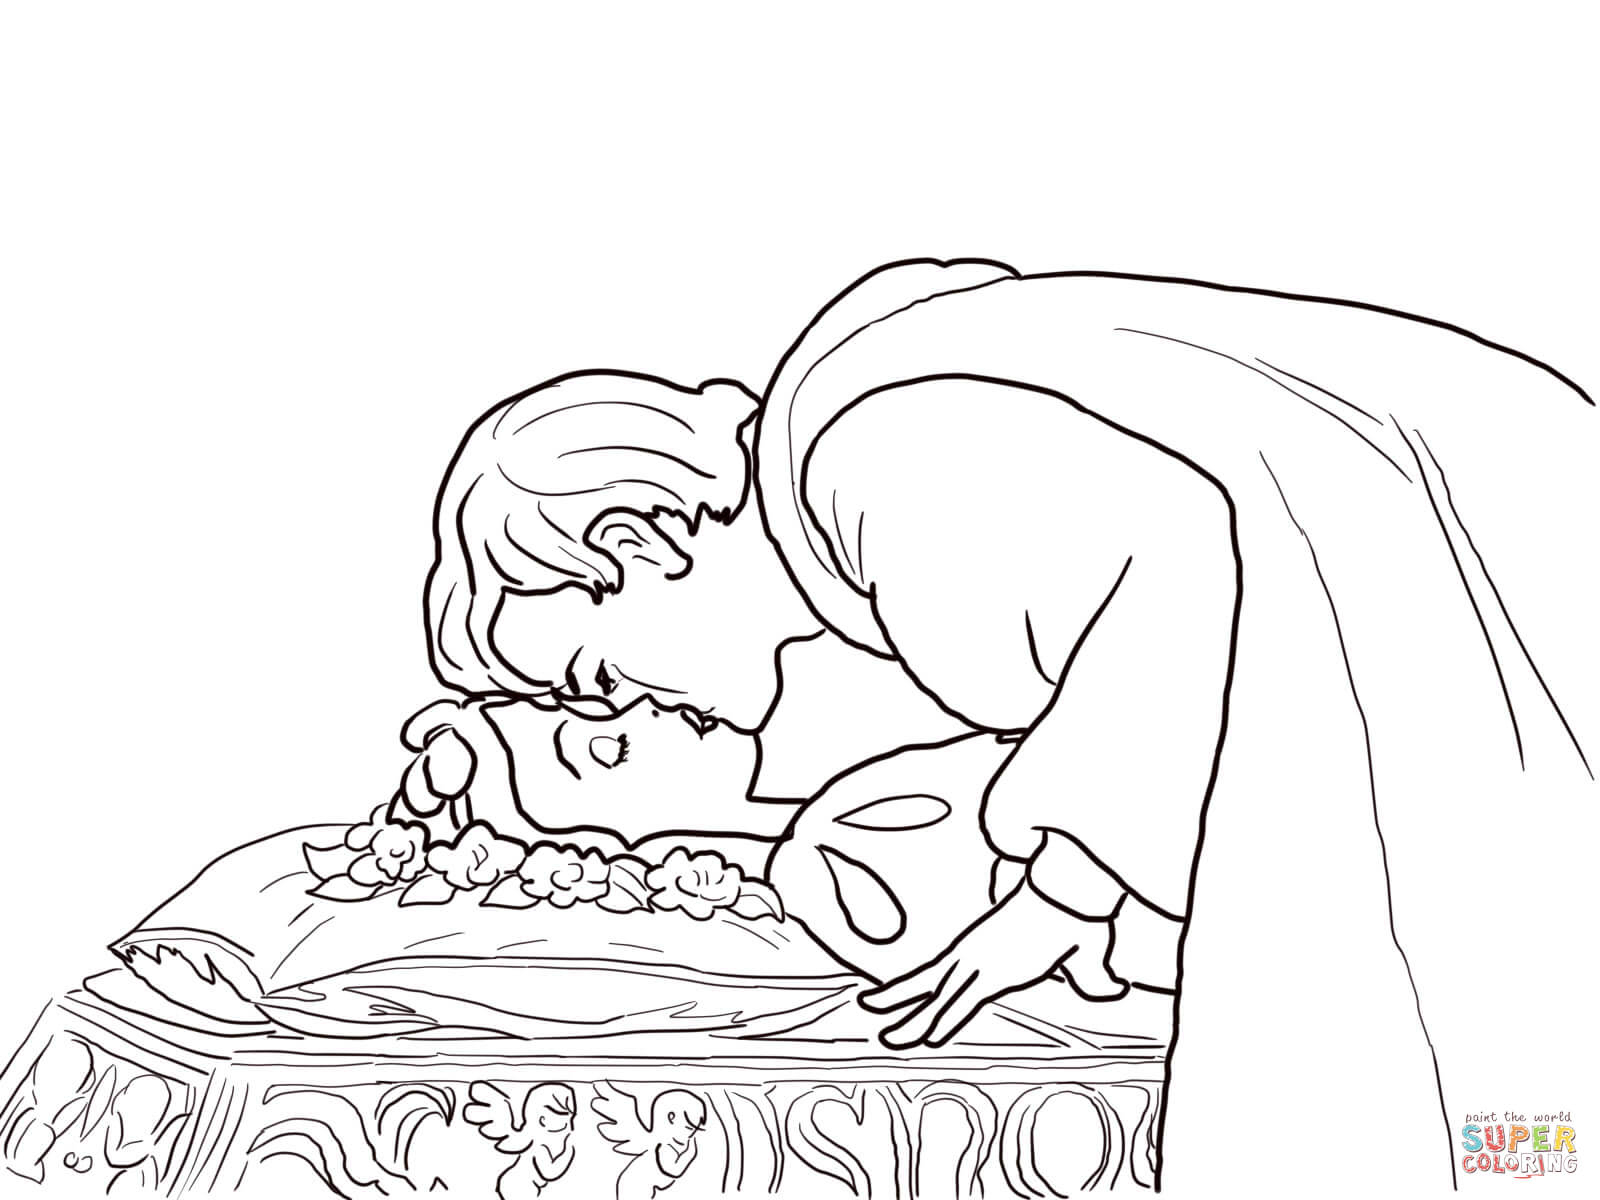 Coloriage - Le Prince Embrasse Blanche-Neige | Coloriages À destiné Blanche Neige A Colorier